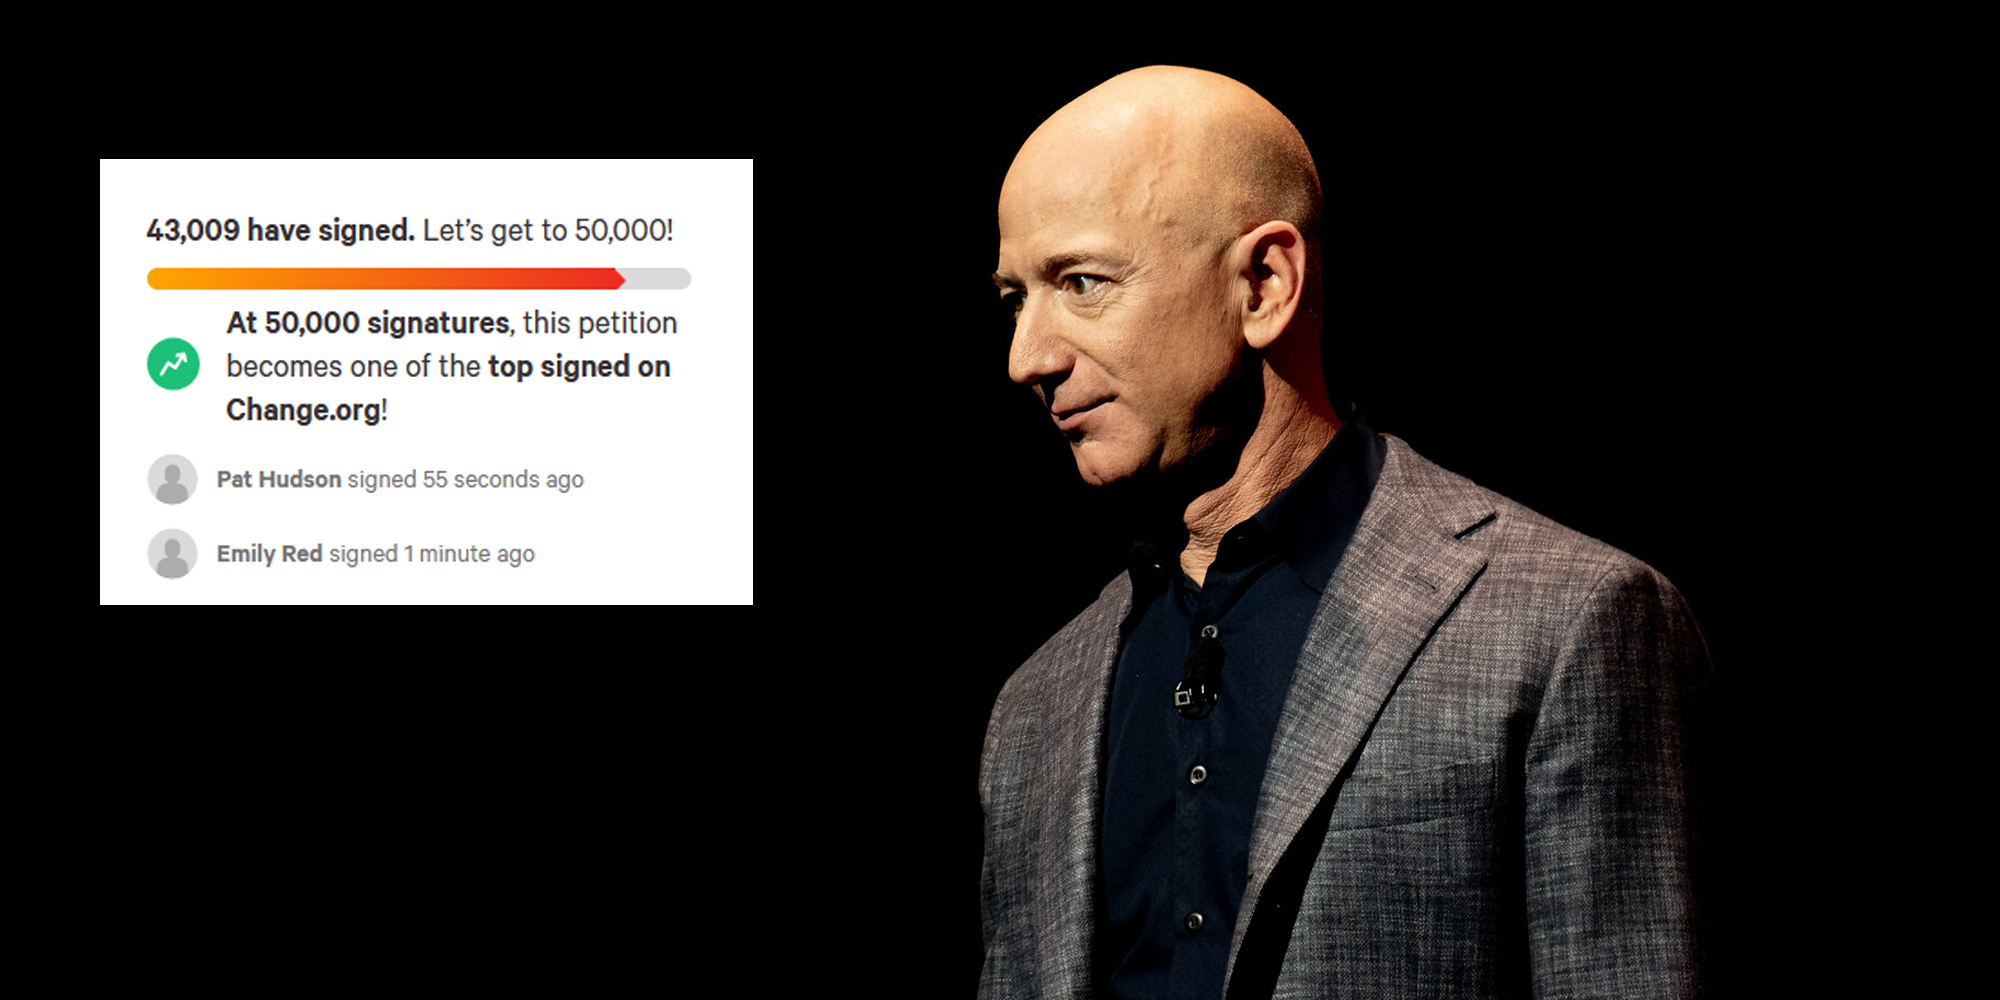 'Billionaires should not exist': Thousands sign petitions calling for Jeff Bezos not to return from space trip